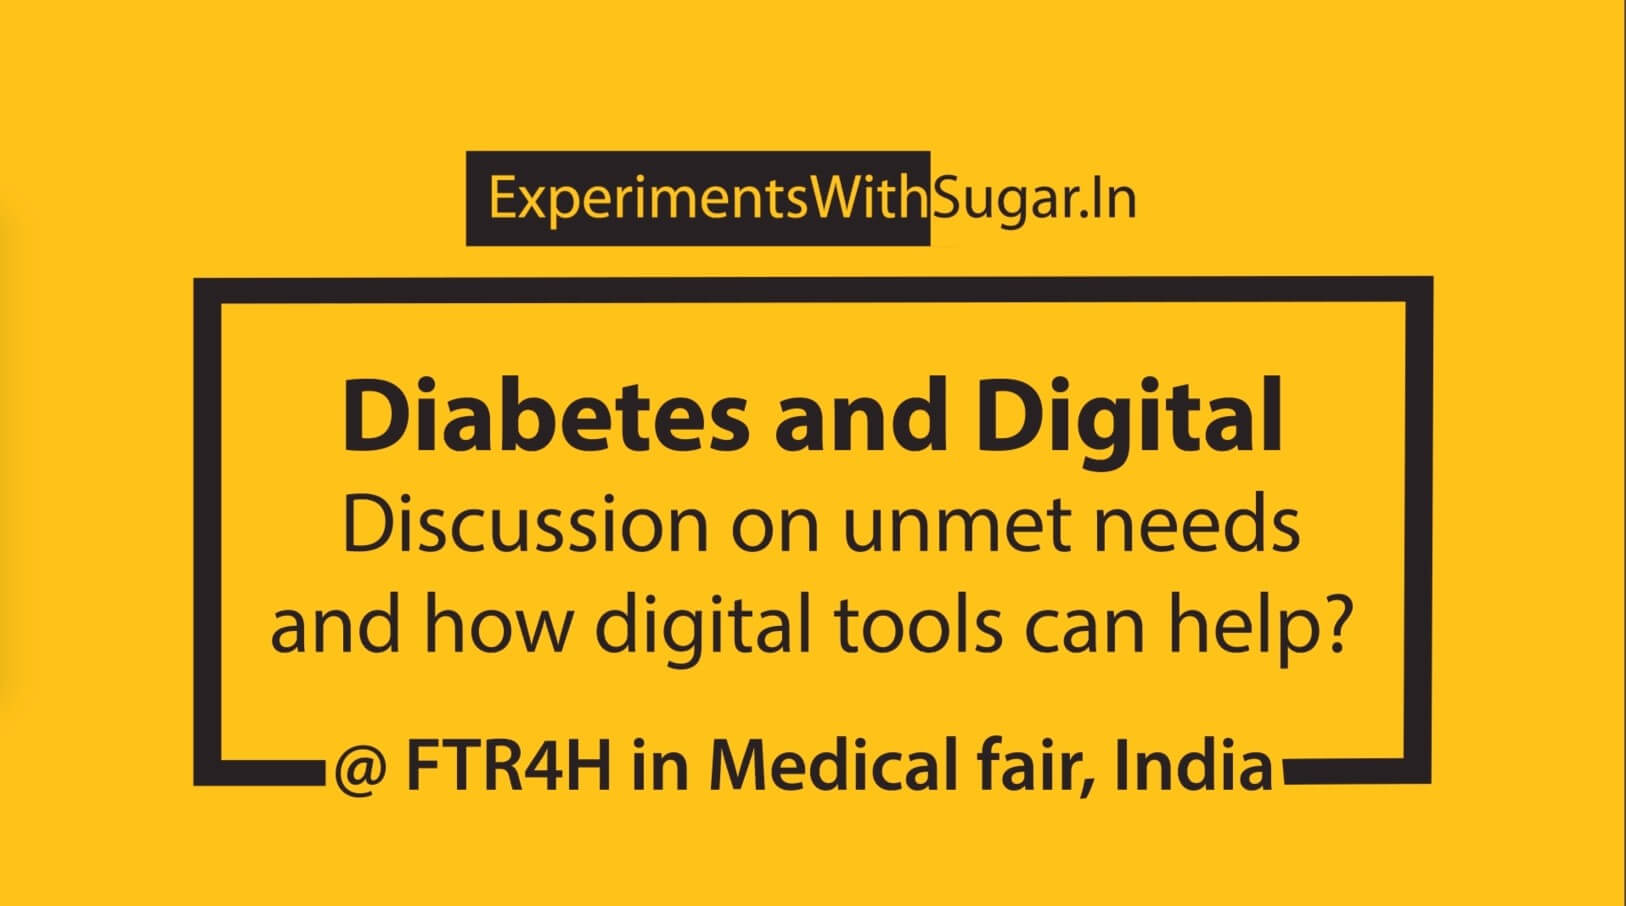 Panel discussion by ExperimentsWithSugar team for FTR4H in Medical Fair India 2019